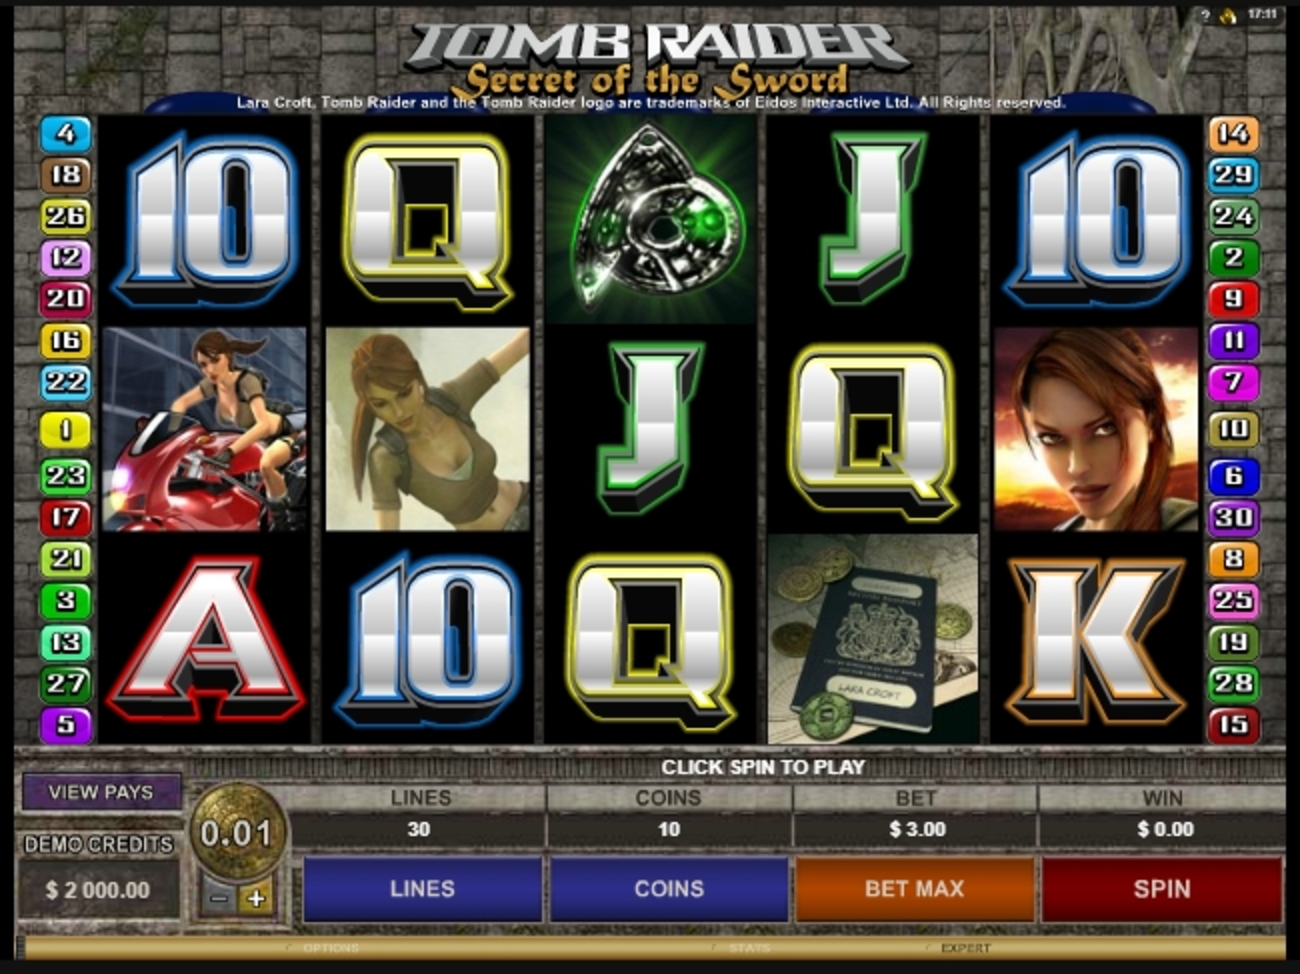 Reels in Tomb Raider Secret of the Sword Slot Game by Microgaming